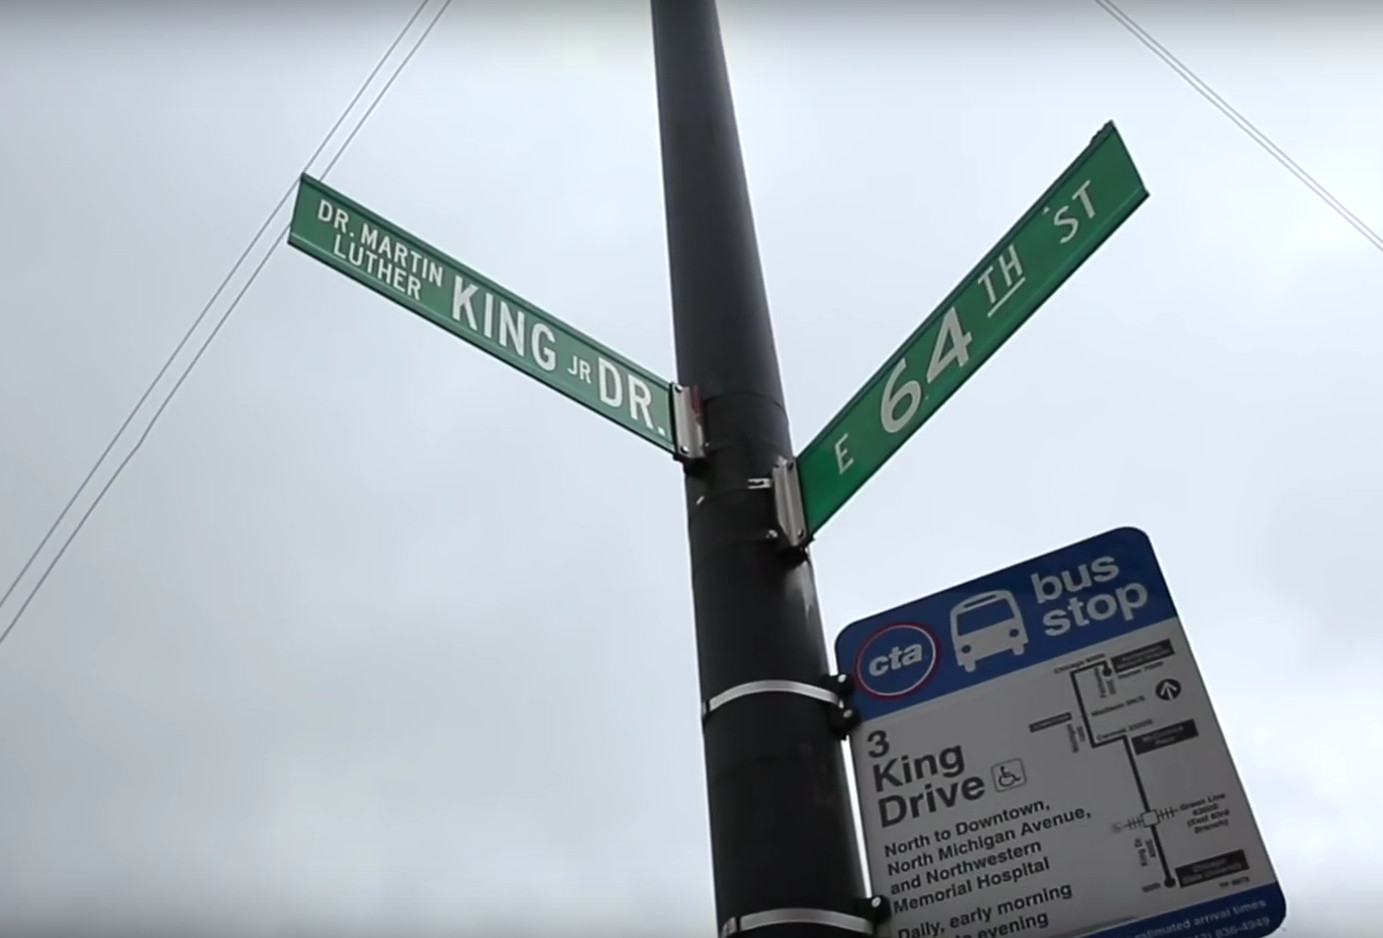 The most dangerous block in Chicago, once home to Michelle Obama: 'O